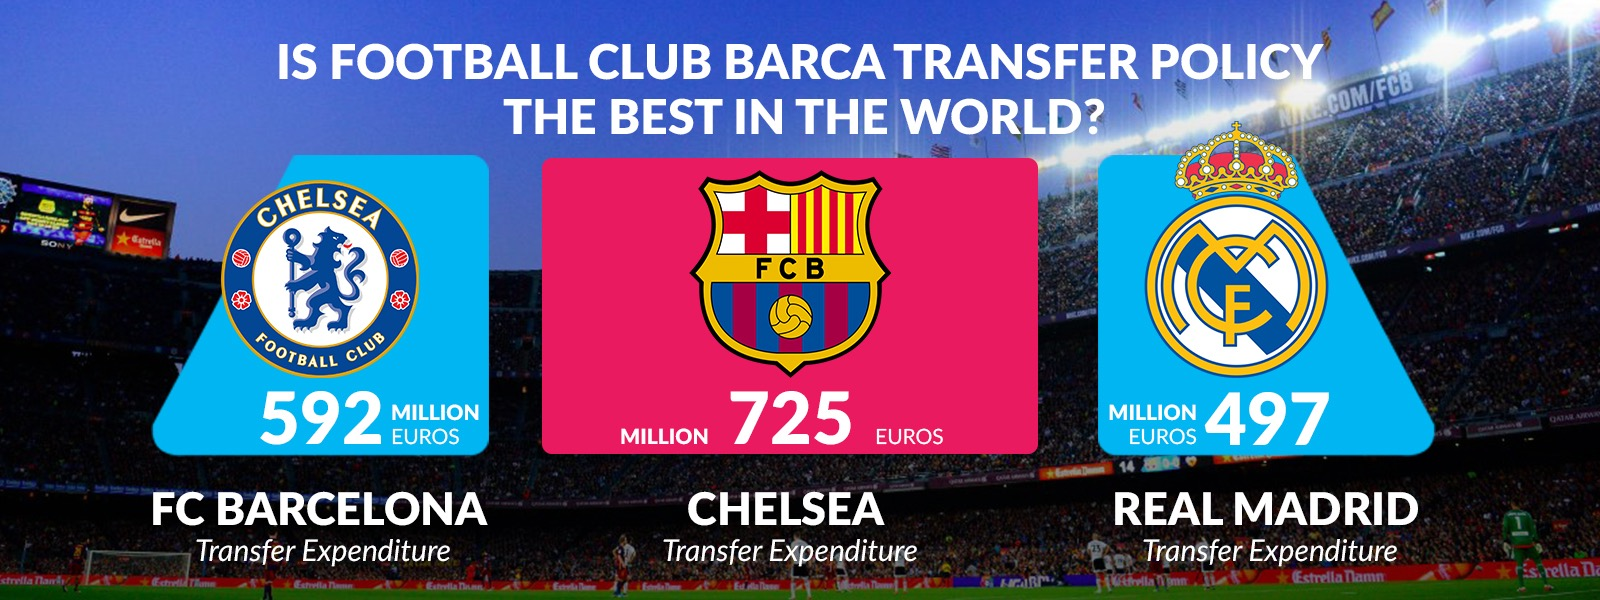 Is Football Club Barca Transfer Policy The Best in The World?